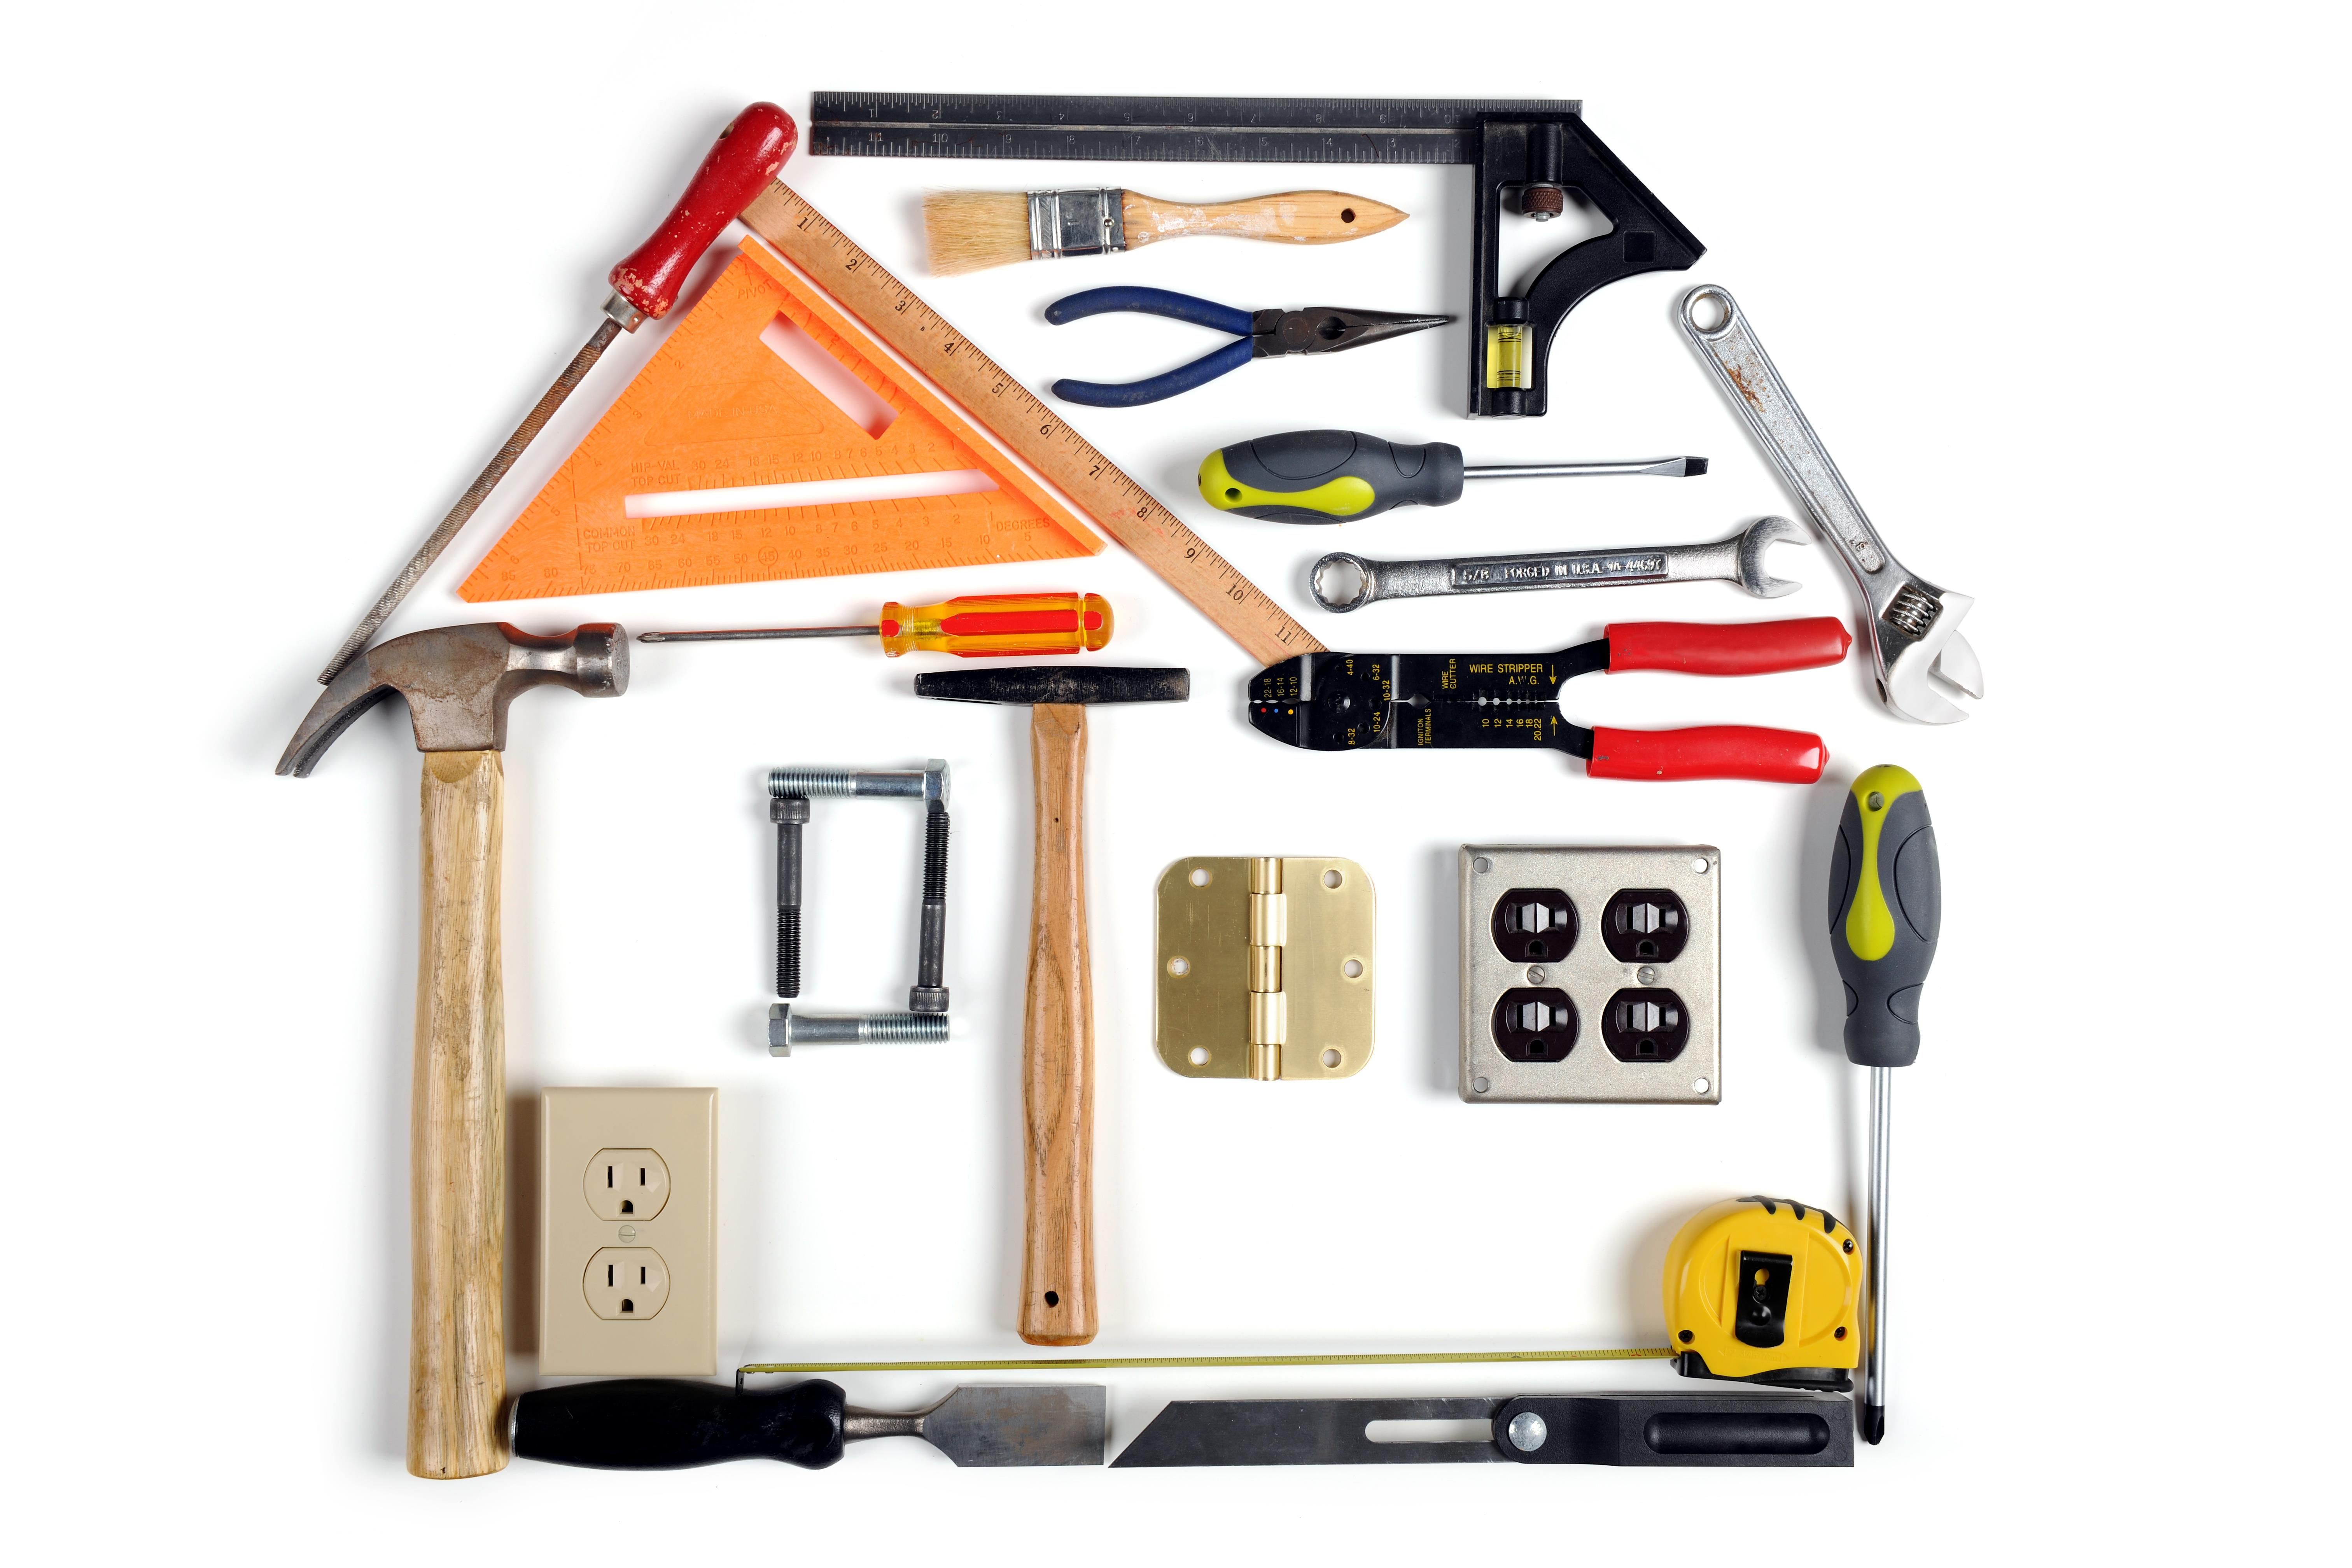 Construction tools forming the shape of a house